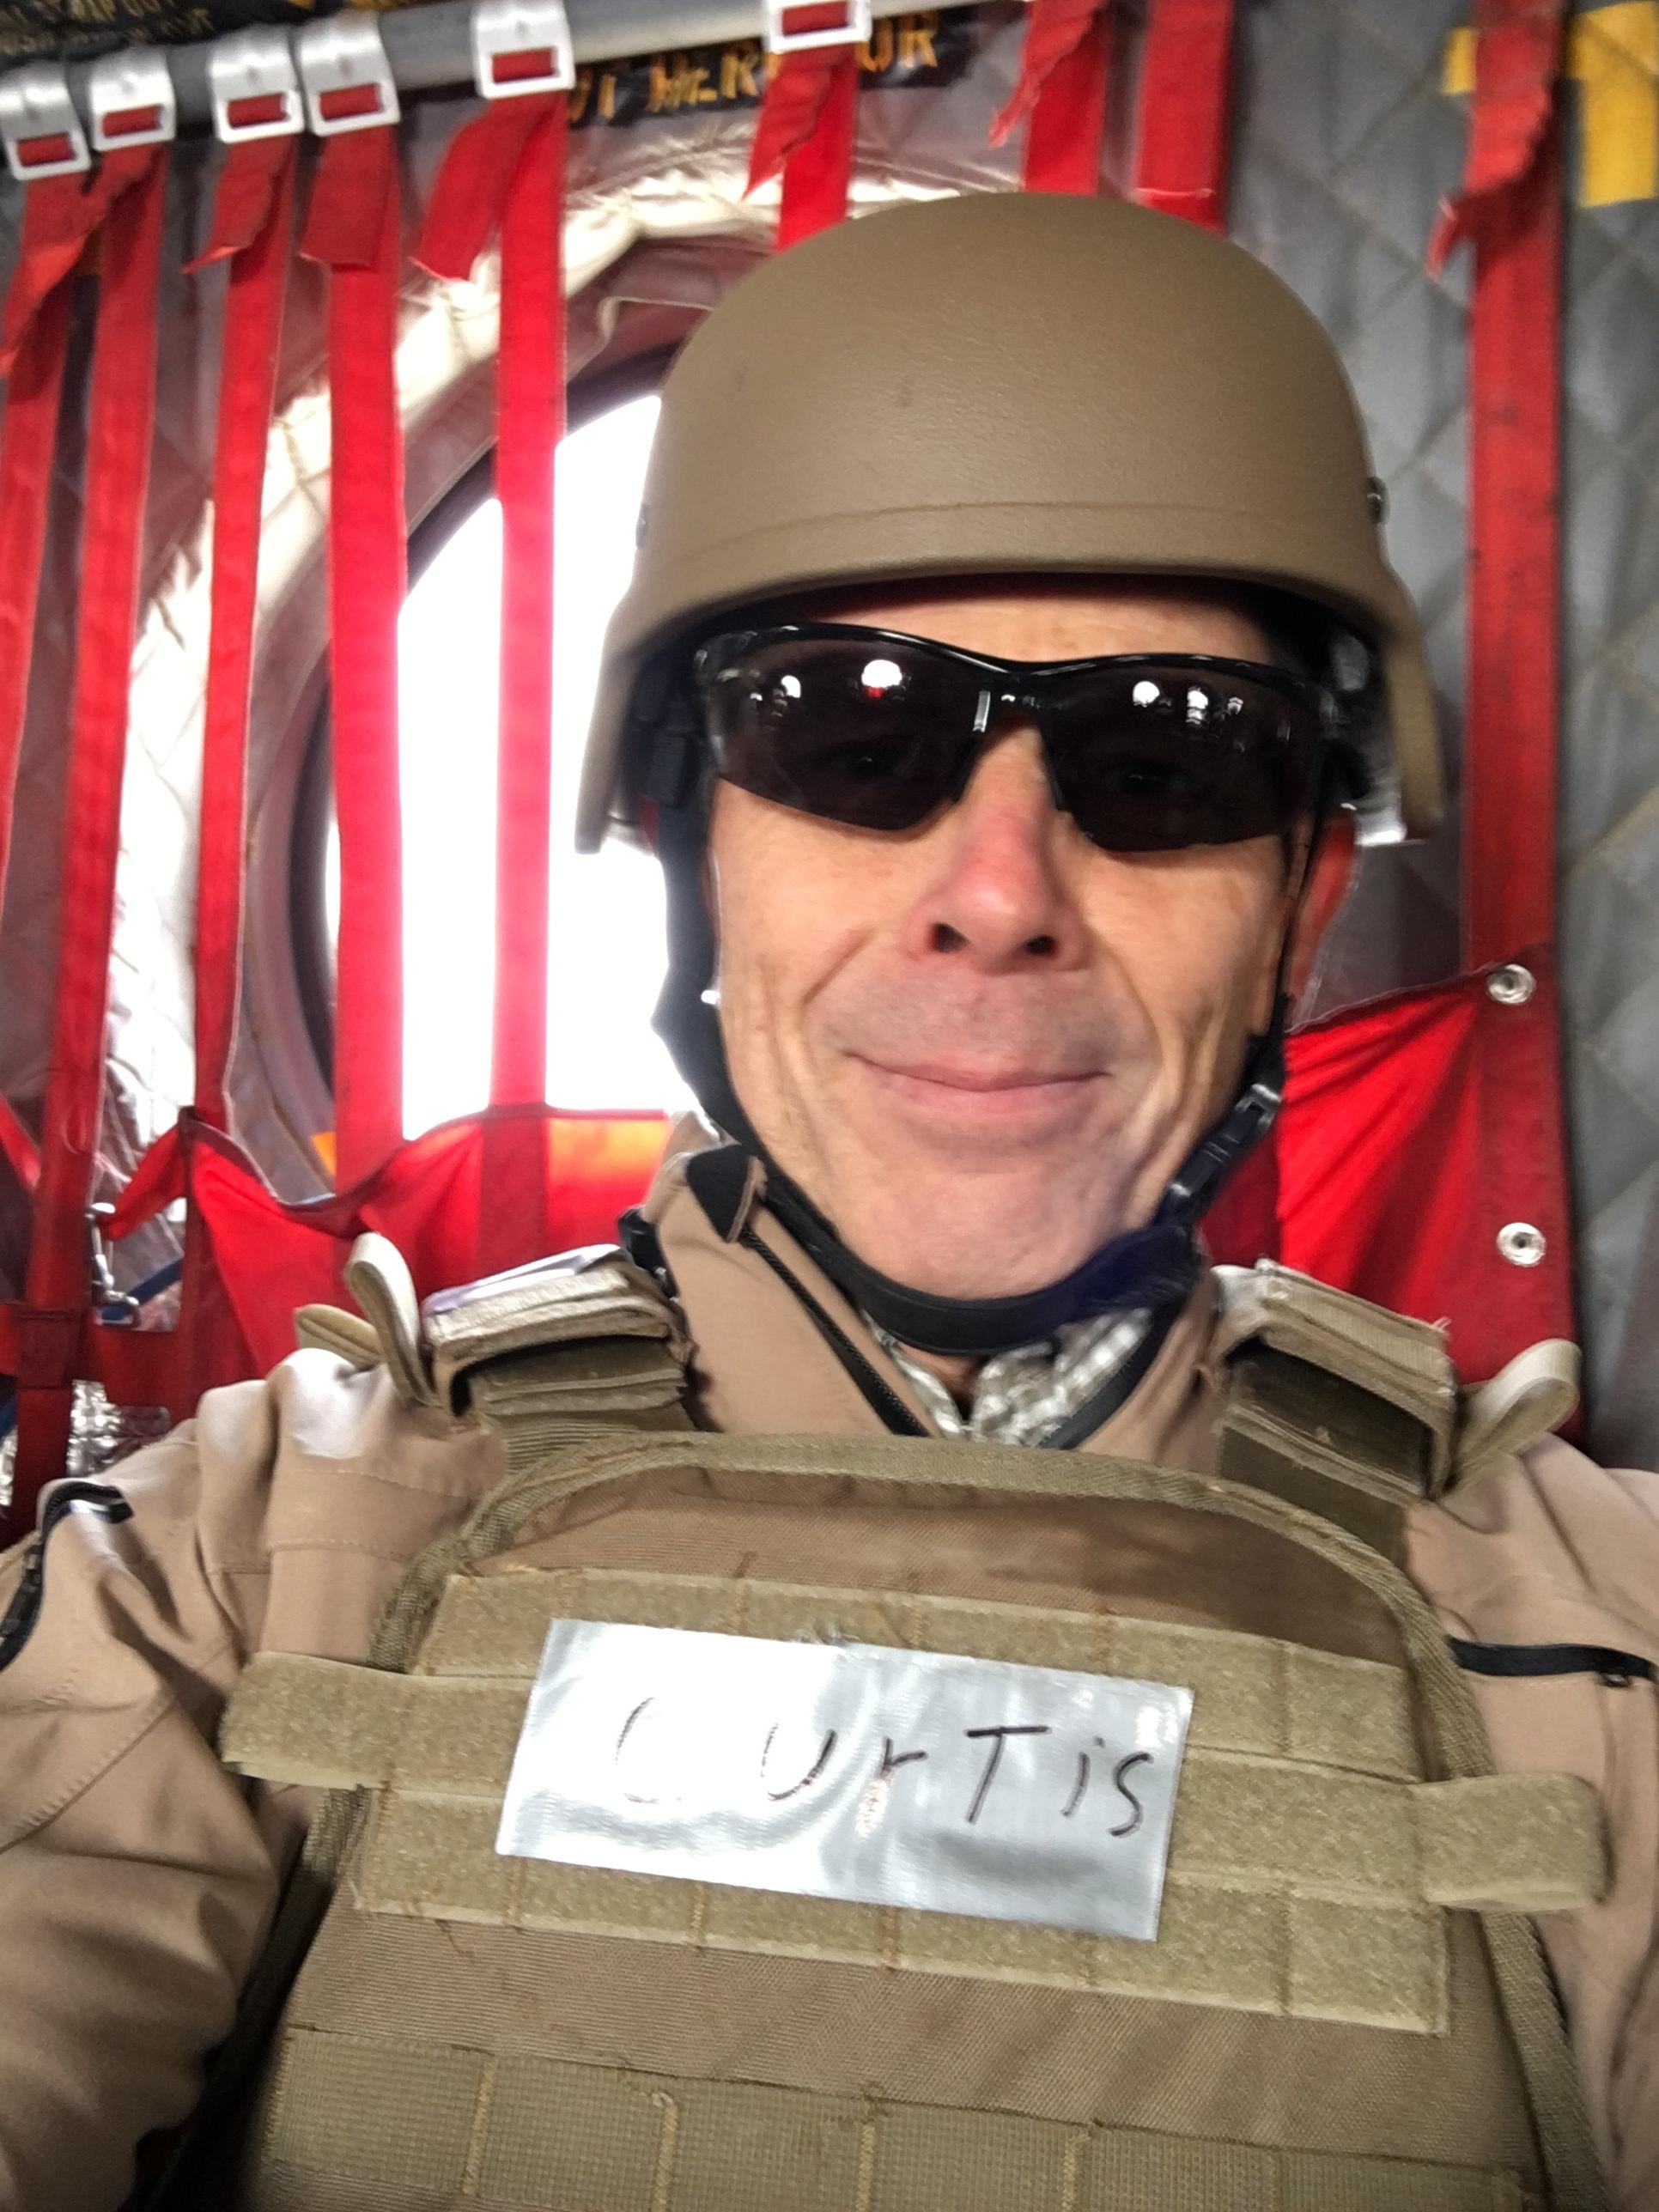 Rep. John Curtis is back in Utah after a visit to the Middle East where he thanked the troops and learned more about the difficulties they're facing in the region. (Photo courtesy of Rep. John Curtis)